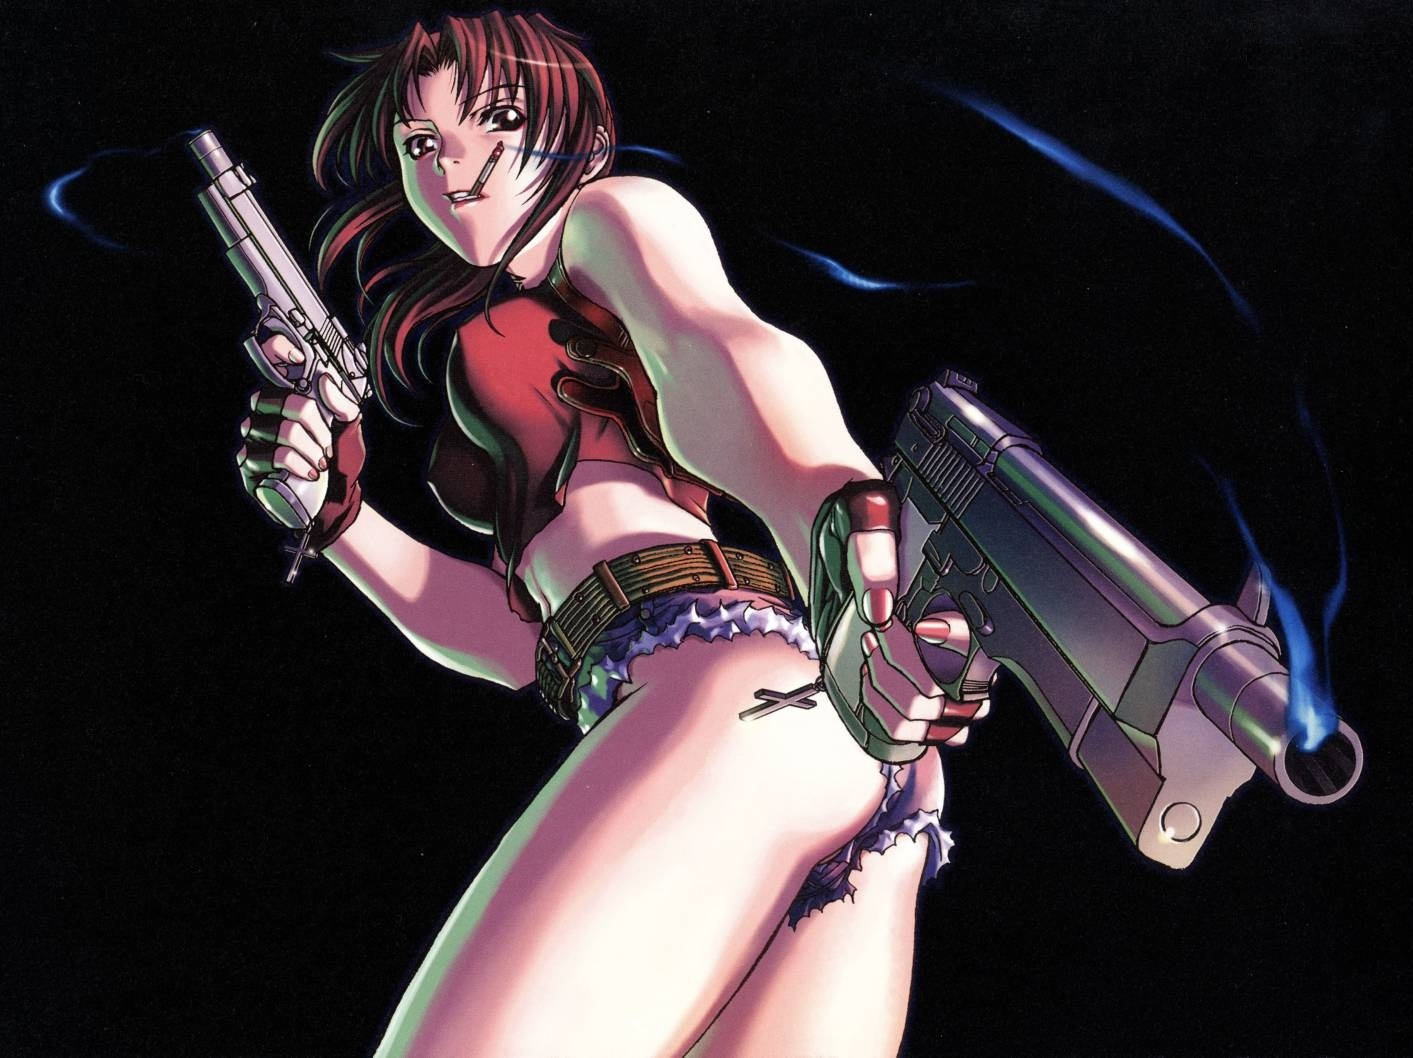 black lagoon Revy low-angle HD Wallpaper